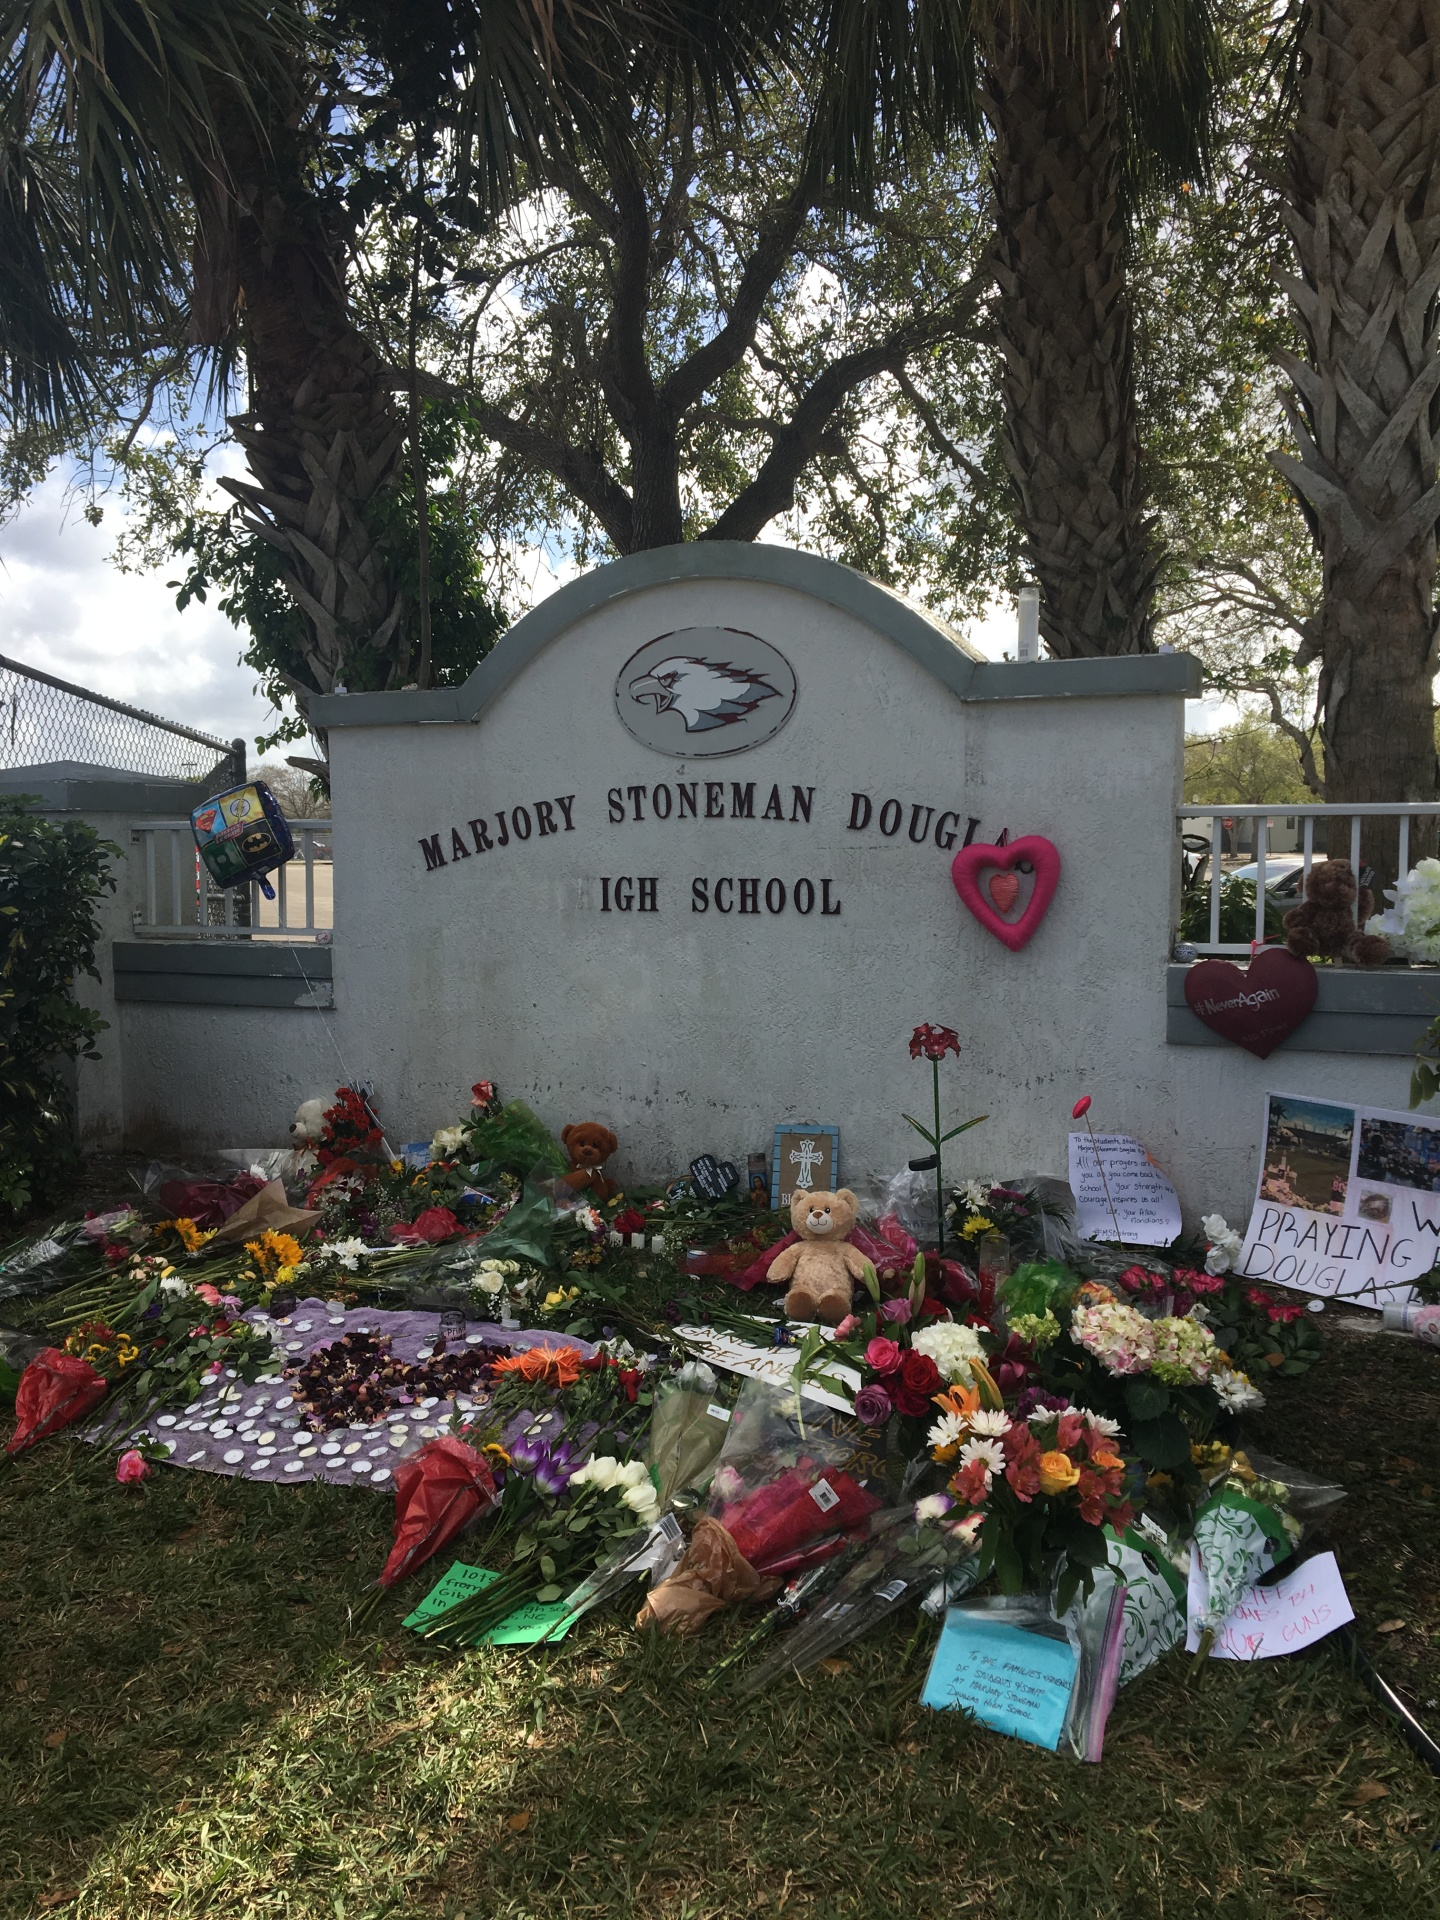 Valentine's Day Massacre at MSD Leaves 17 Dead and Millions Fighting for Gun Control